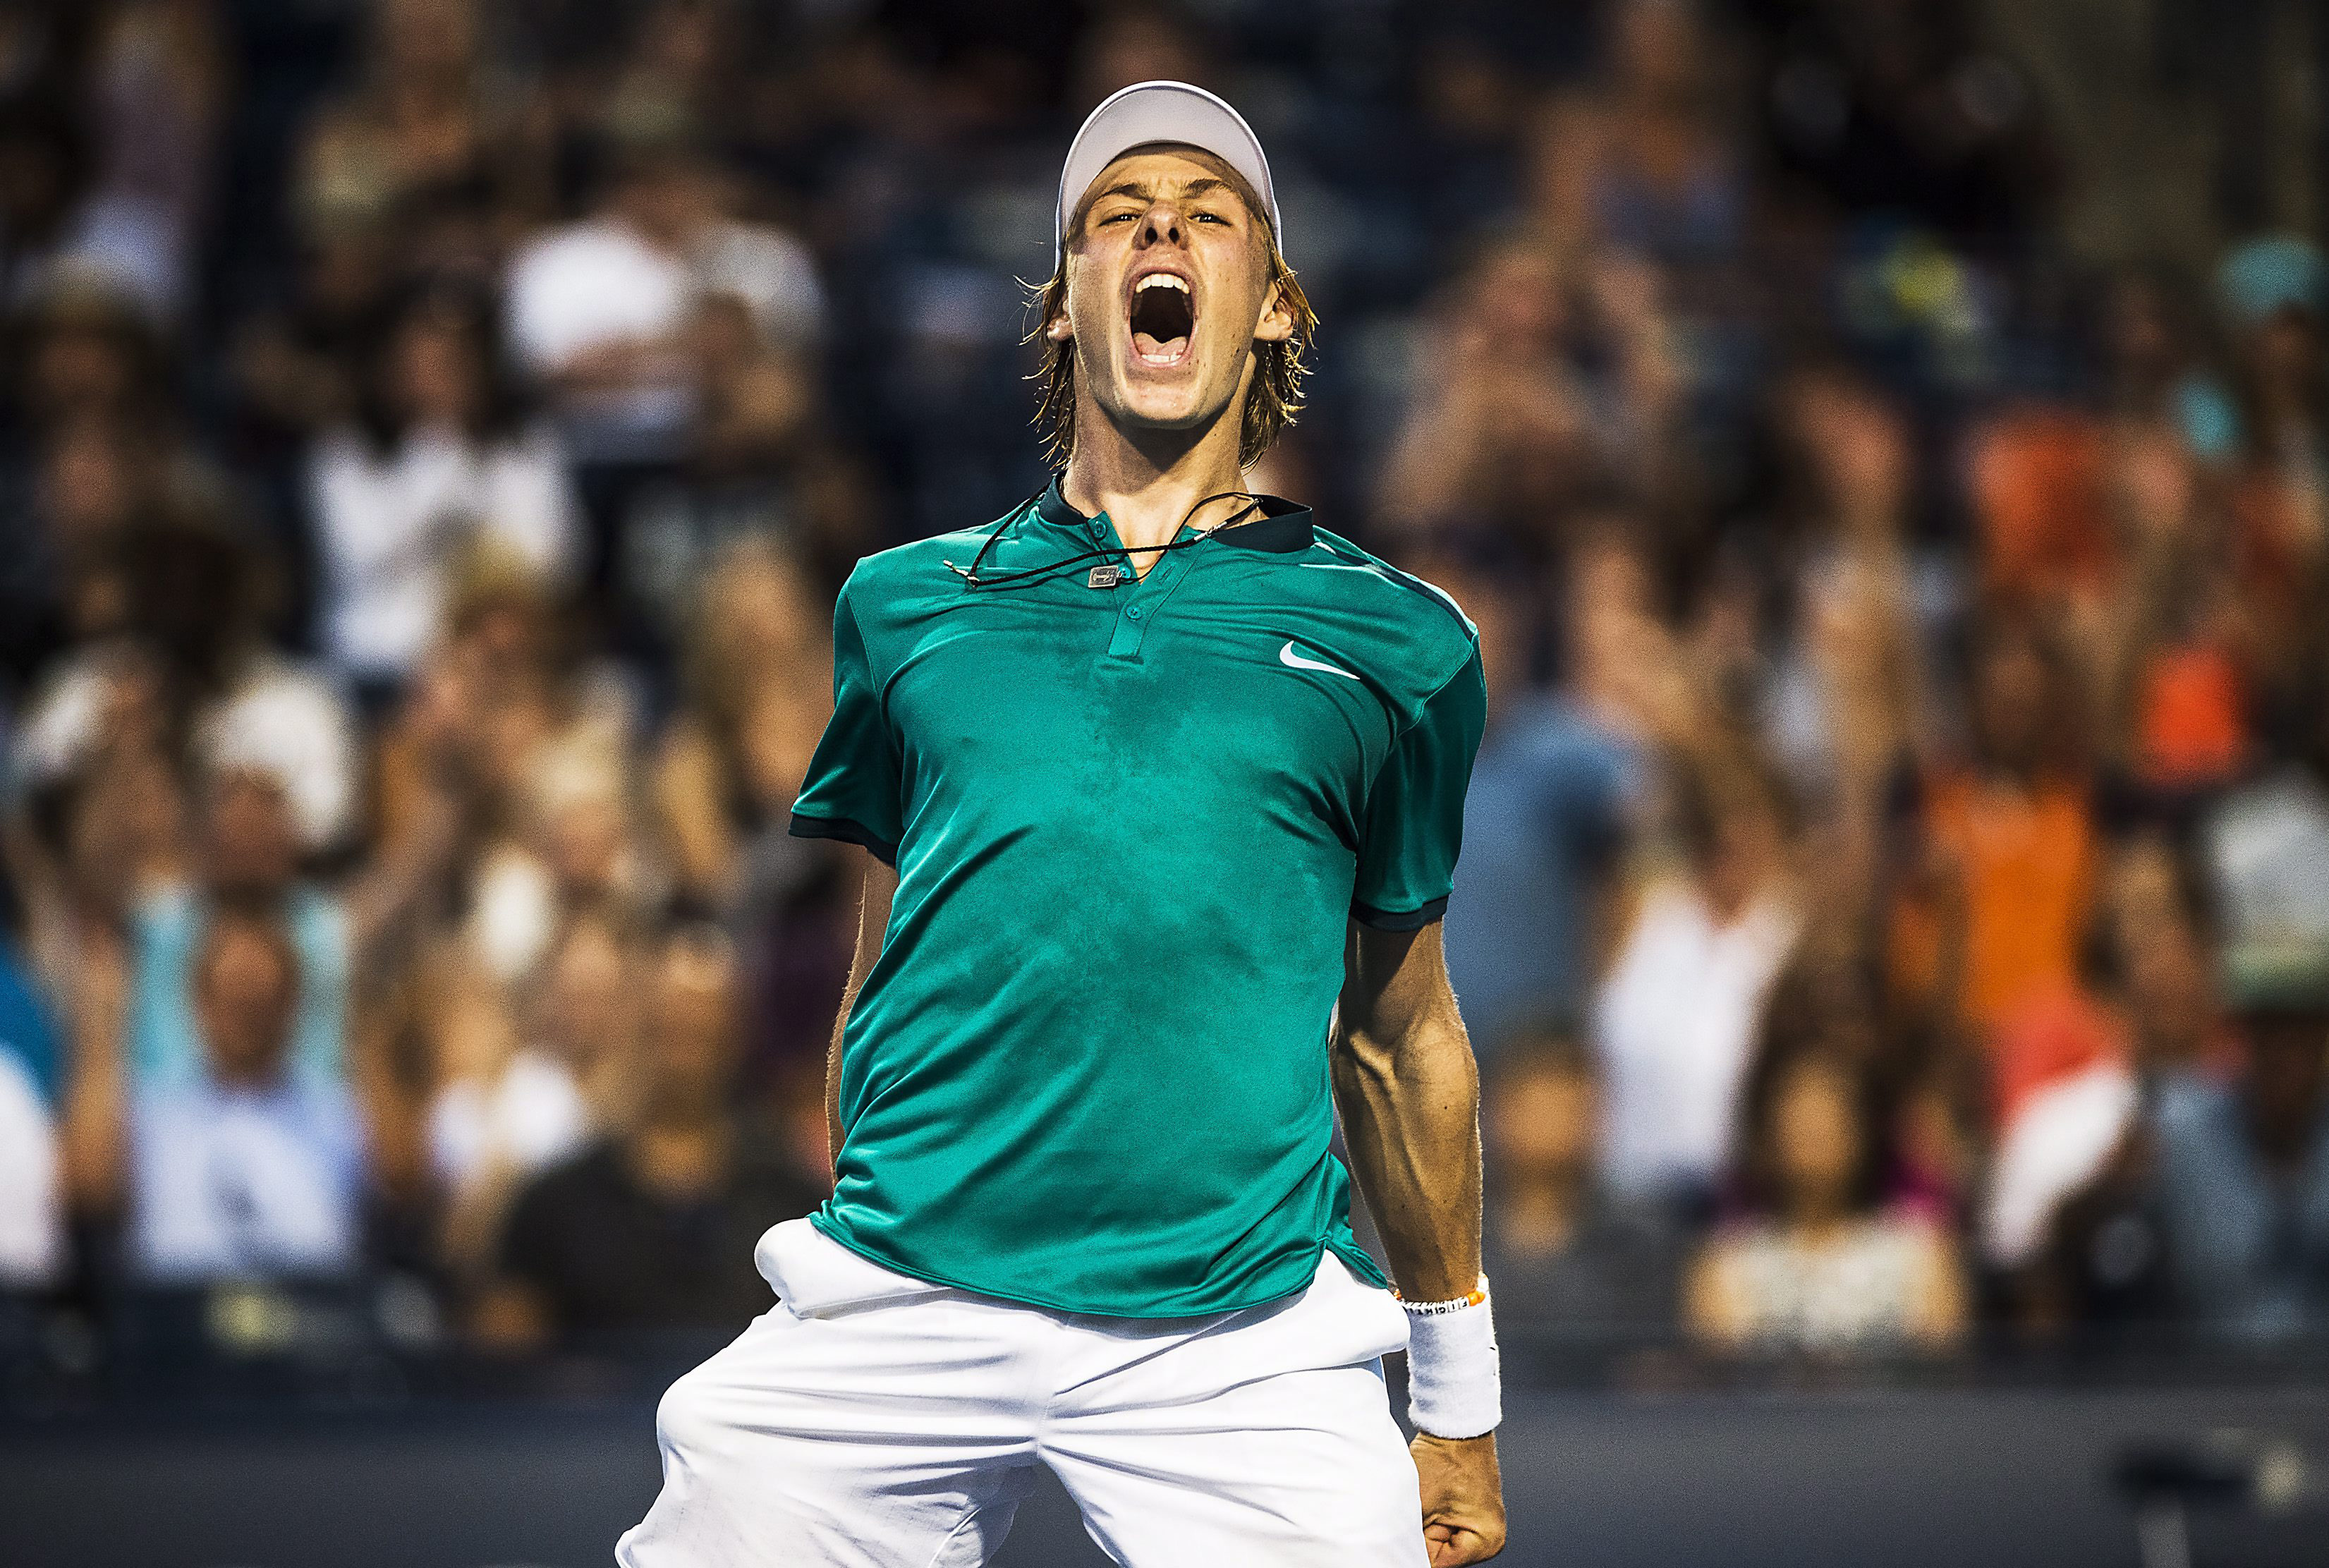 Denis Shapovalov, of Canada, celebrates his win against Nick Kyrgios, of Australia, during men's first round Rogers Cup tennis action in Toronto on Monday, July 25, 2016. (Aaron Vincent Elkaim/The Canadian Press via AP)